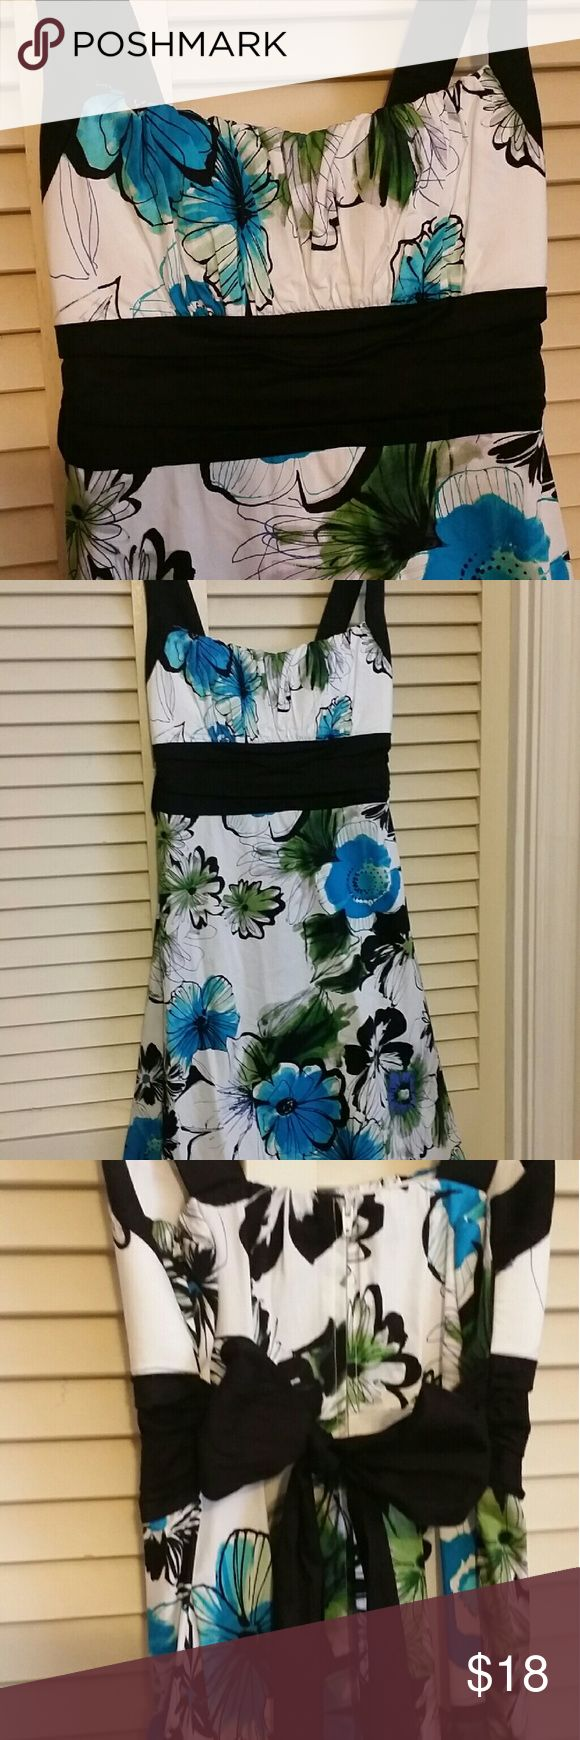 Adorable blue and white floral sundress B. Smart sundress. Blue and black floral design. Ruched top with a black tie back. Zipper back. Empire waist. Great for spring or summer.  Only worn once for college graduation. B. Smart Dresses Midi